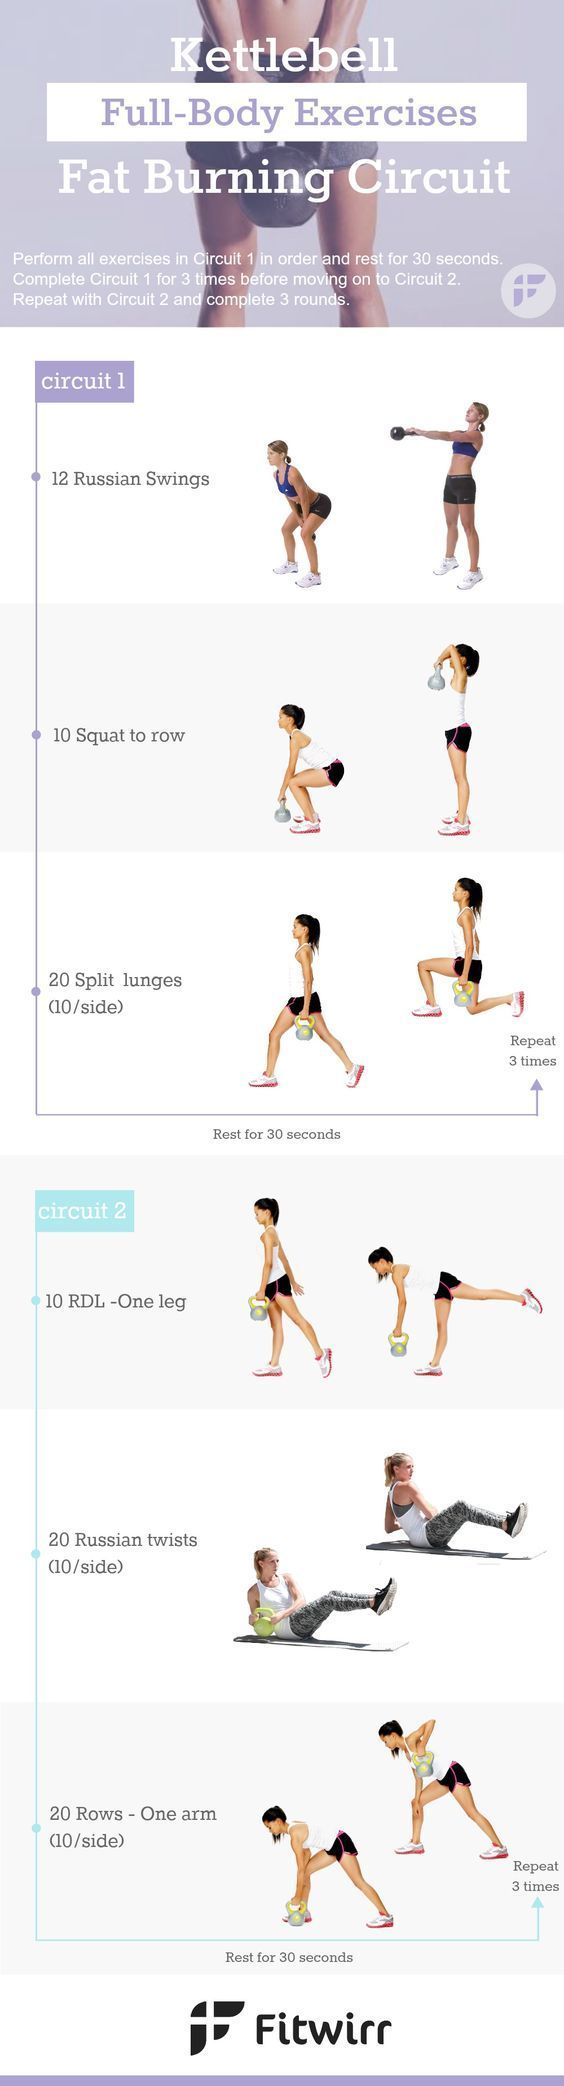 Kettlebell Full Body Workout fitness how to exercise yoga health healthy living home exercise tutorials yoga poses exercising self help exercise tutorials yoga for beginners